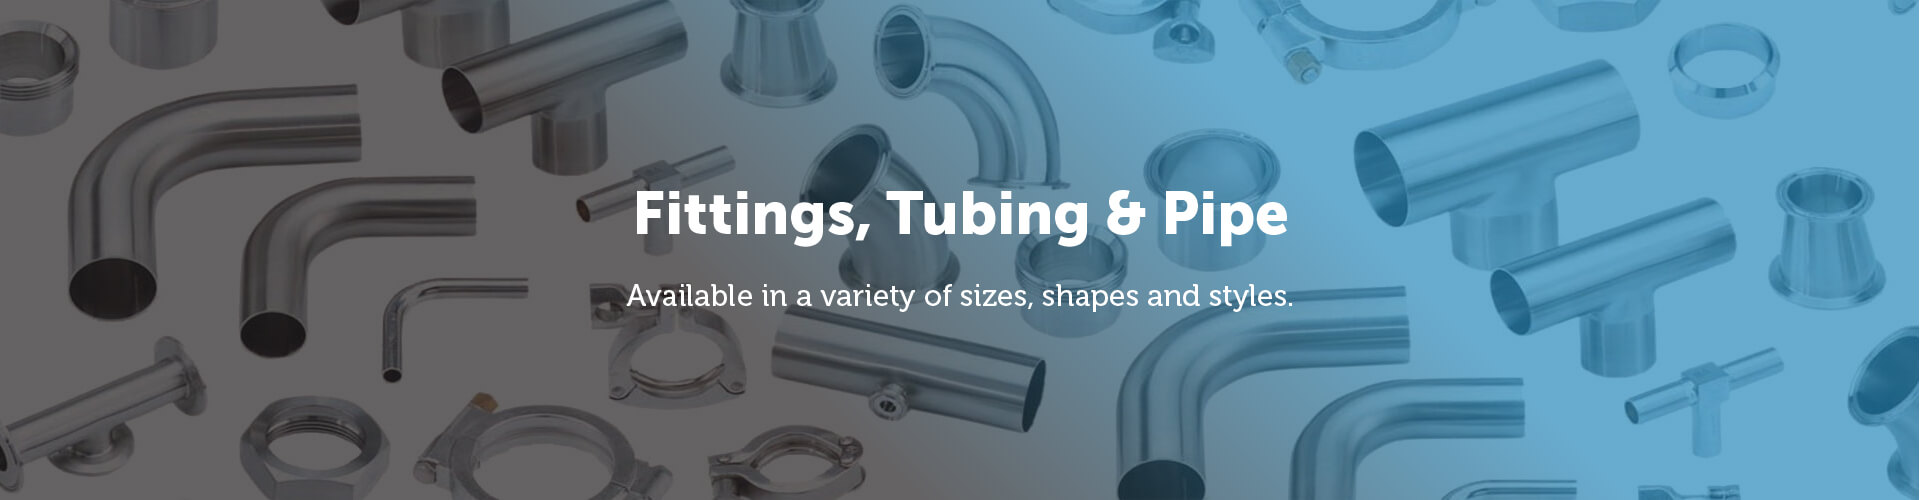 Koss Fittings tube and Pipe